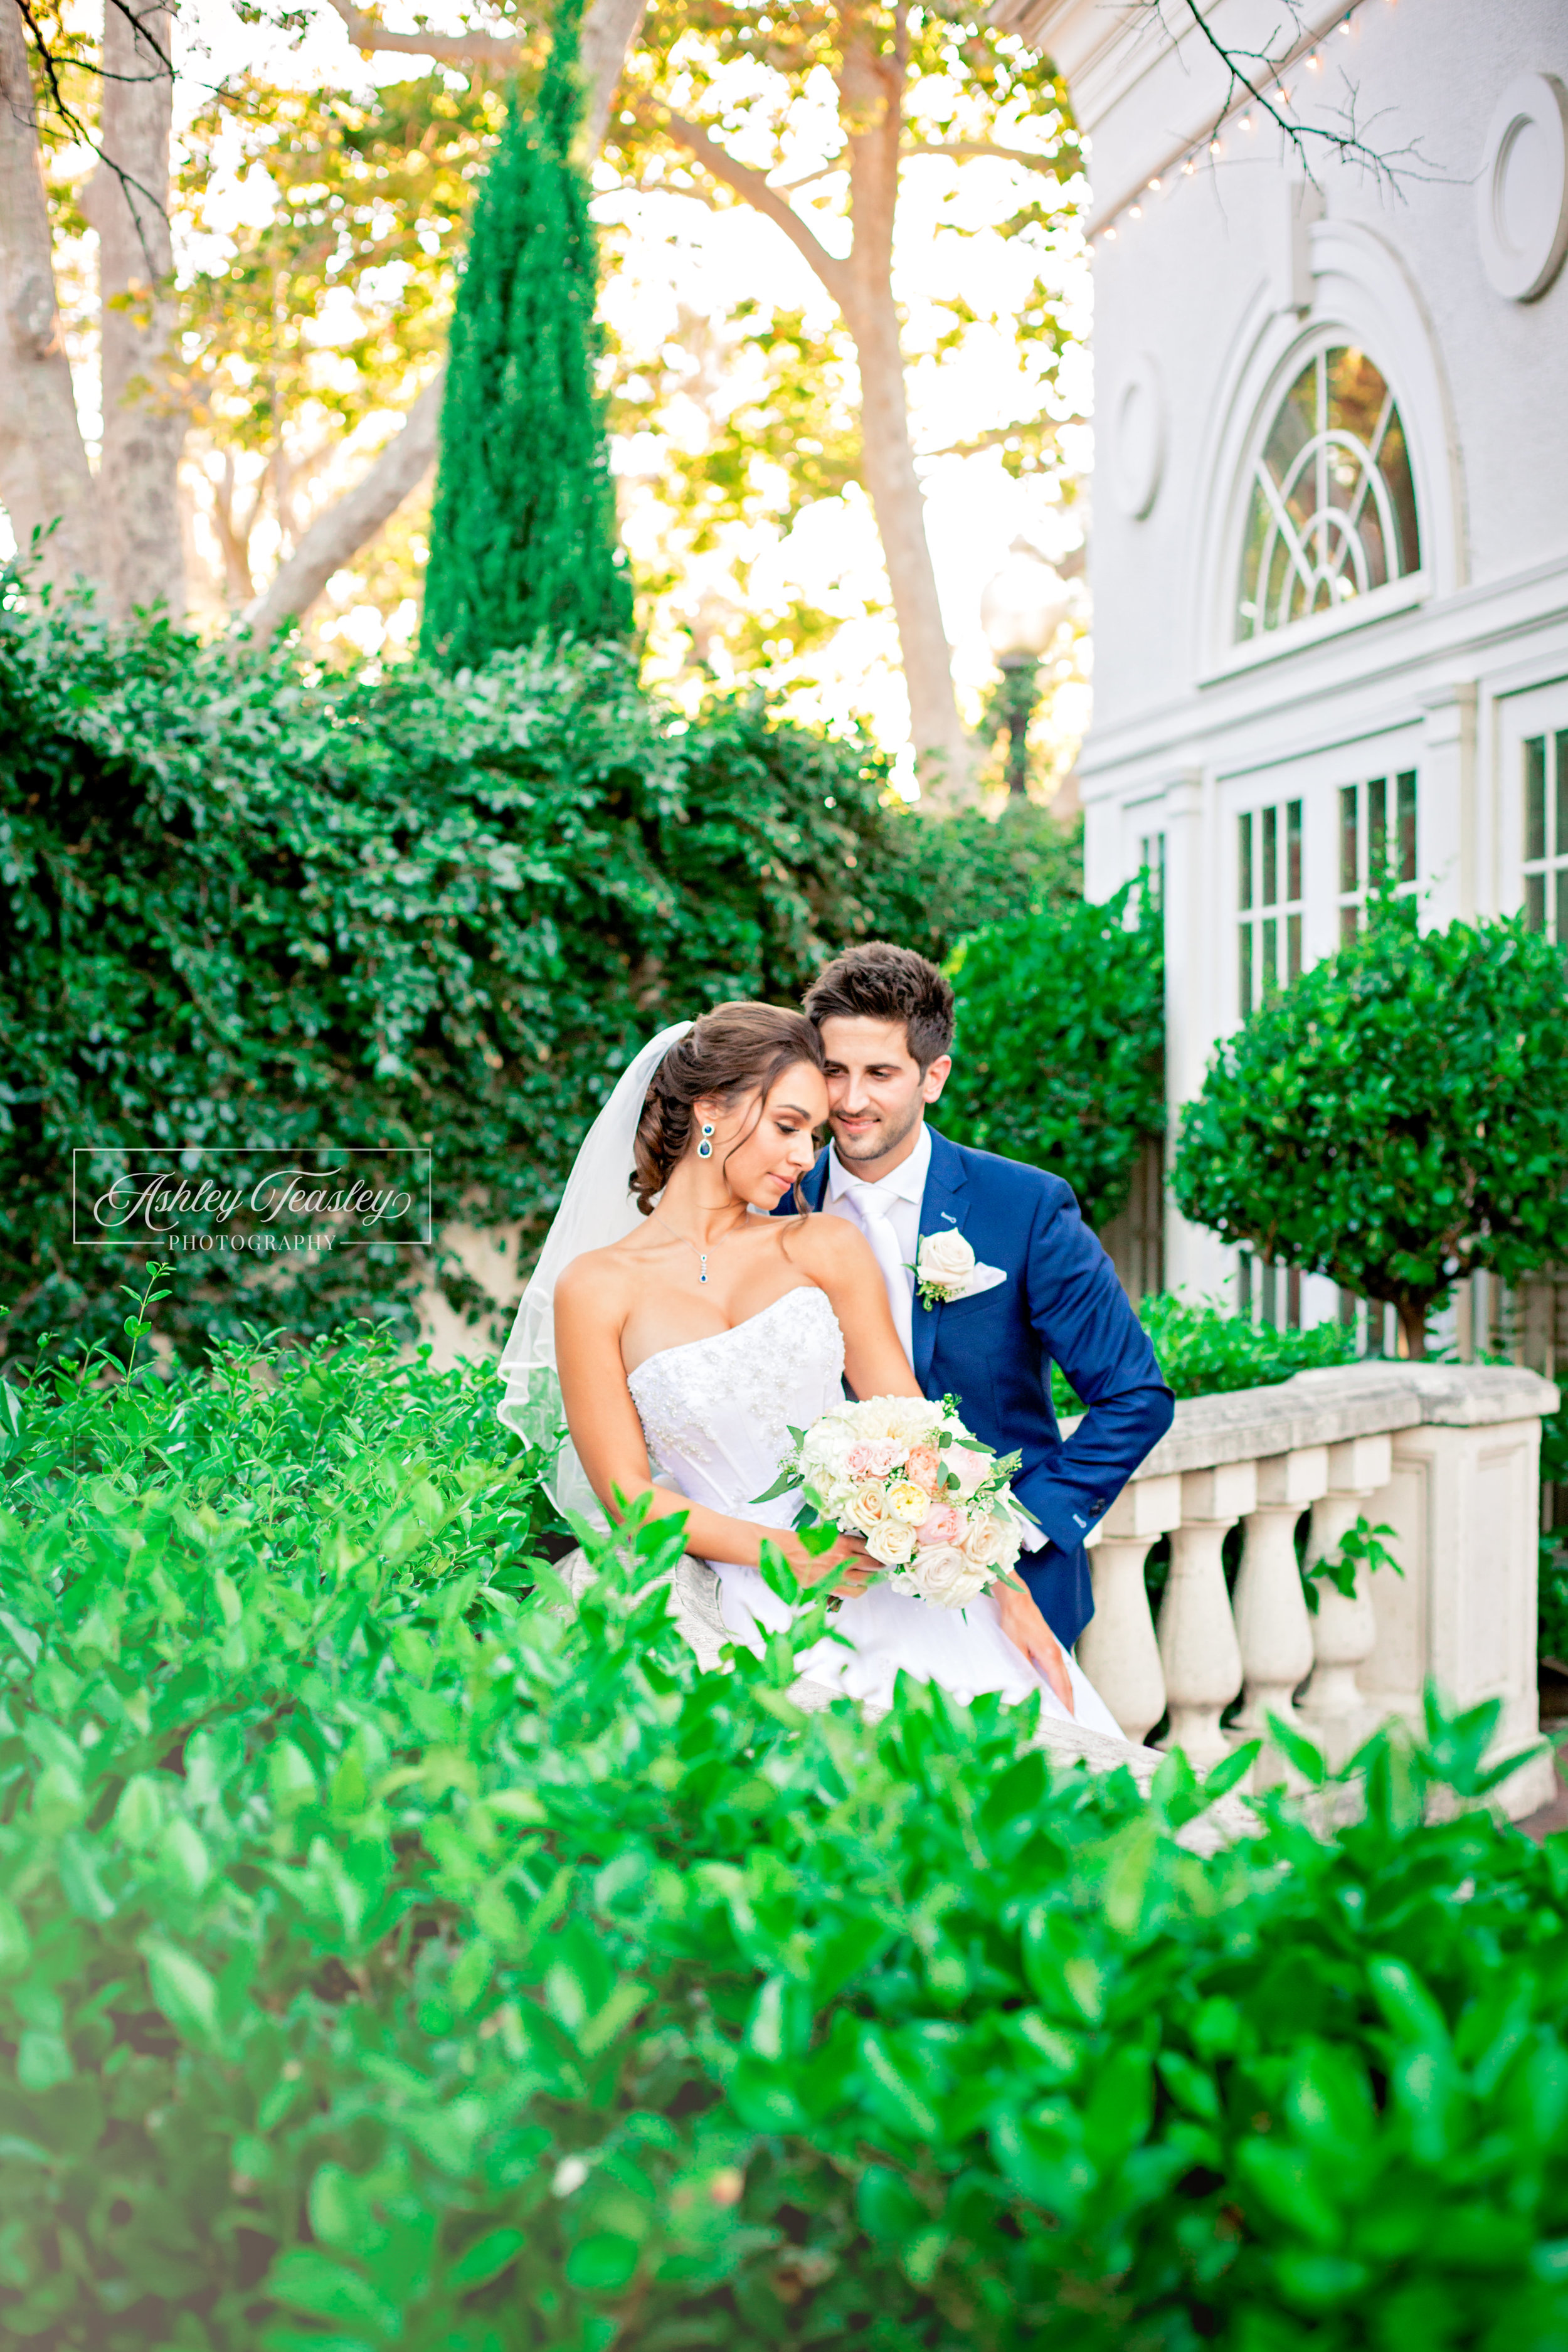 Vizcaya Sacramento - Kaylie & Trevor - Sacramento Wedding Photographer - Ashley Teasley Photography (1 of 1).jpg